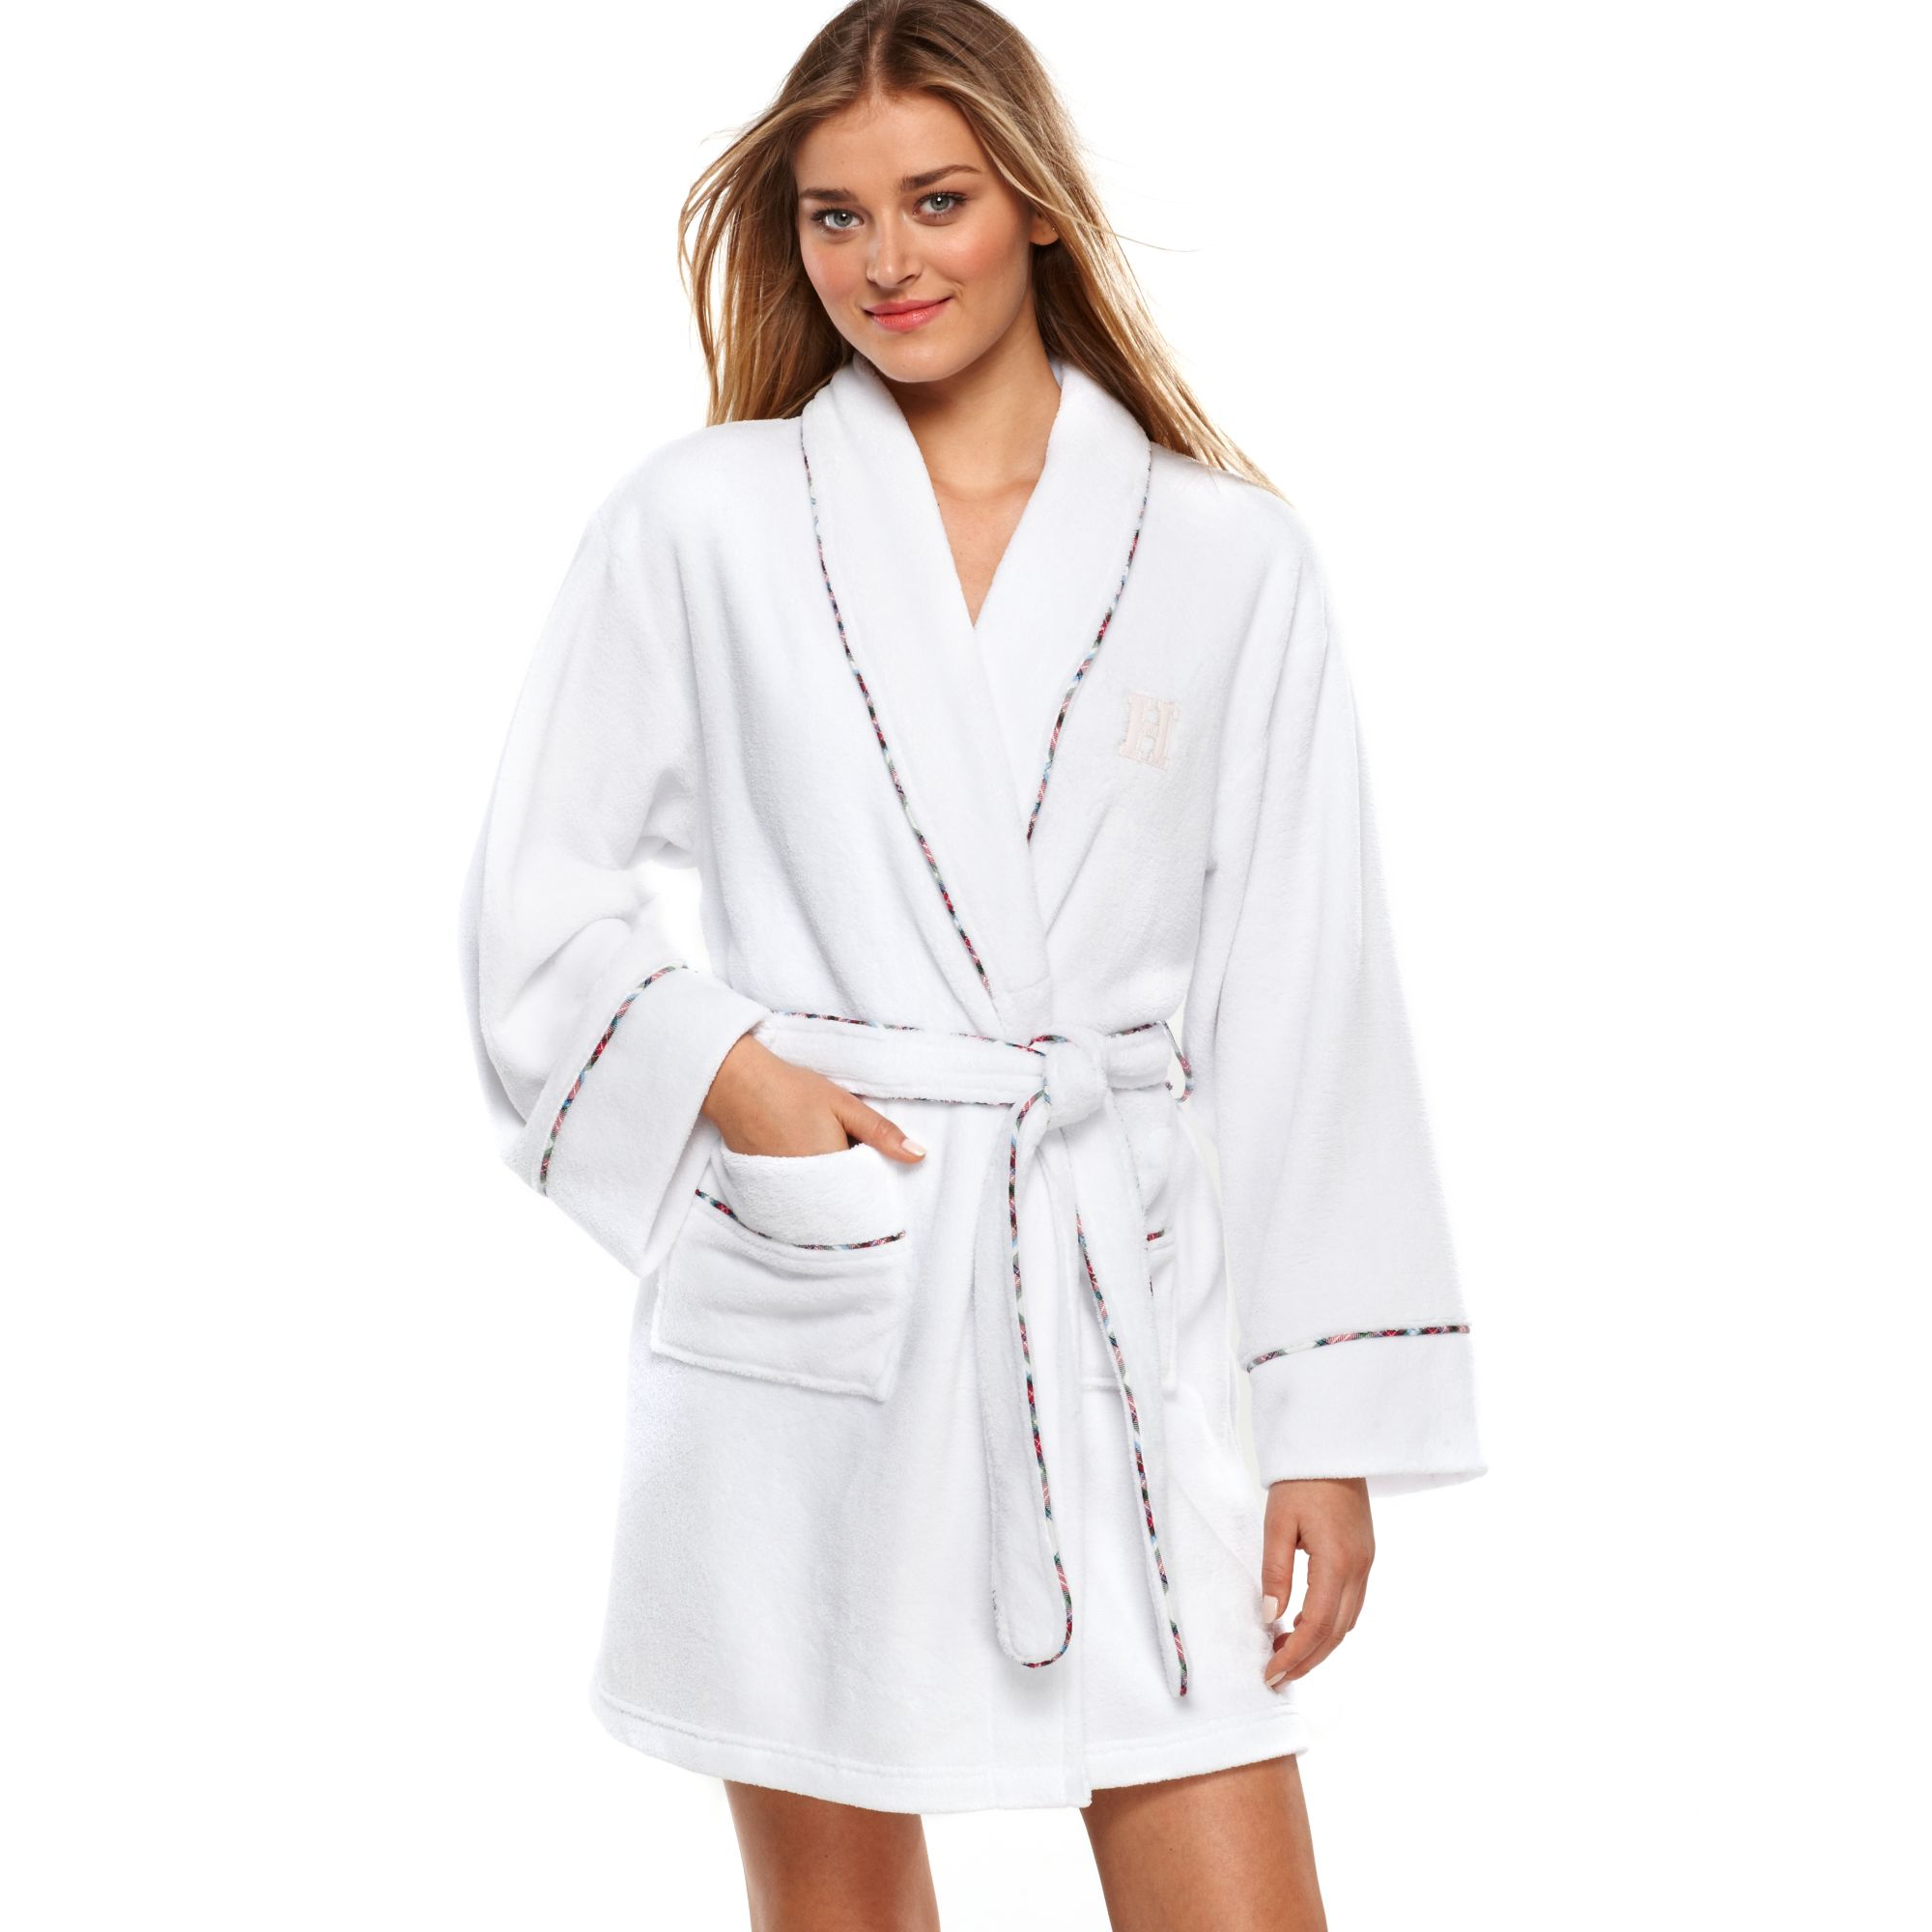 tommy hilfiger super soft short robe in white lyst With tommy hilfiger robe